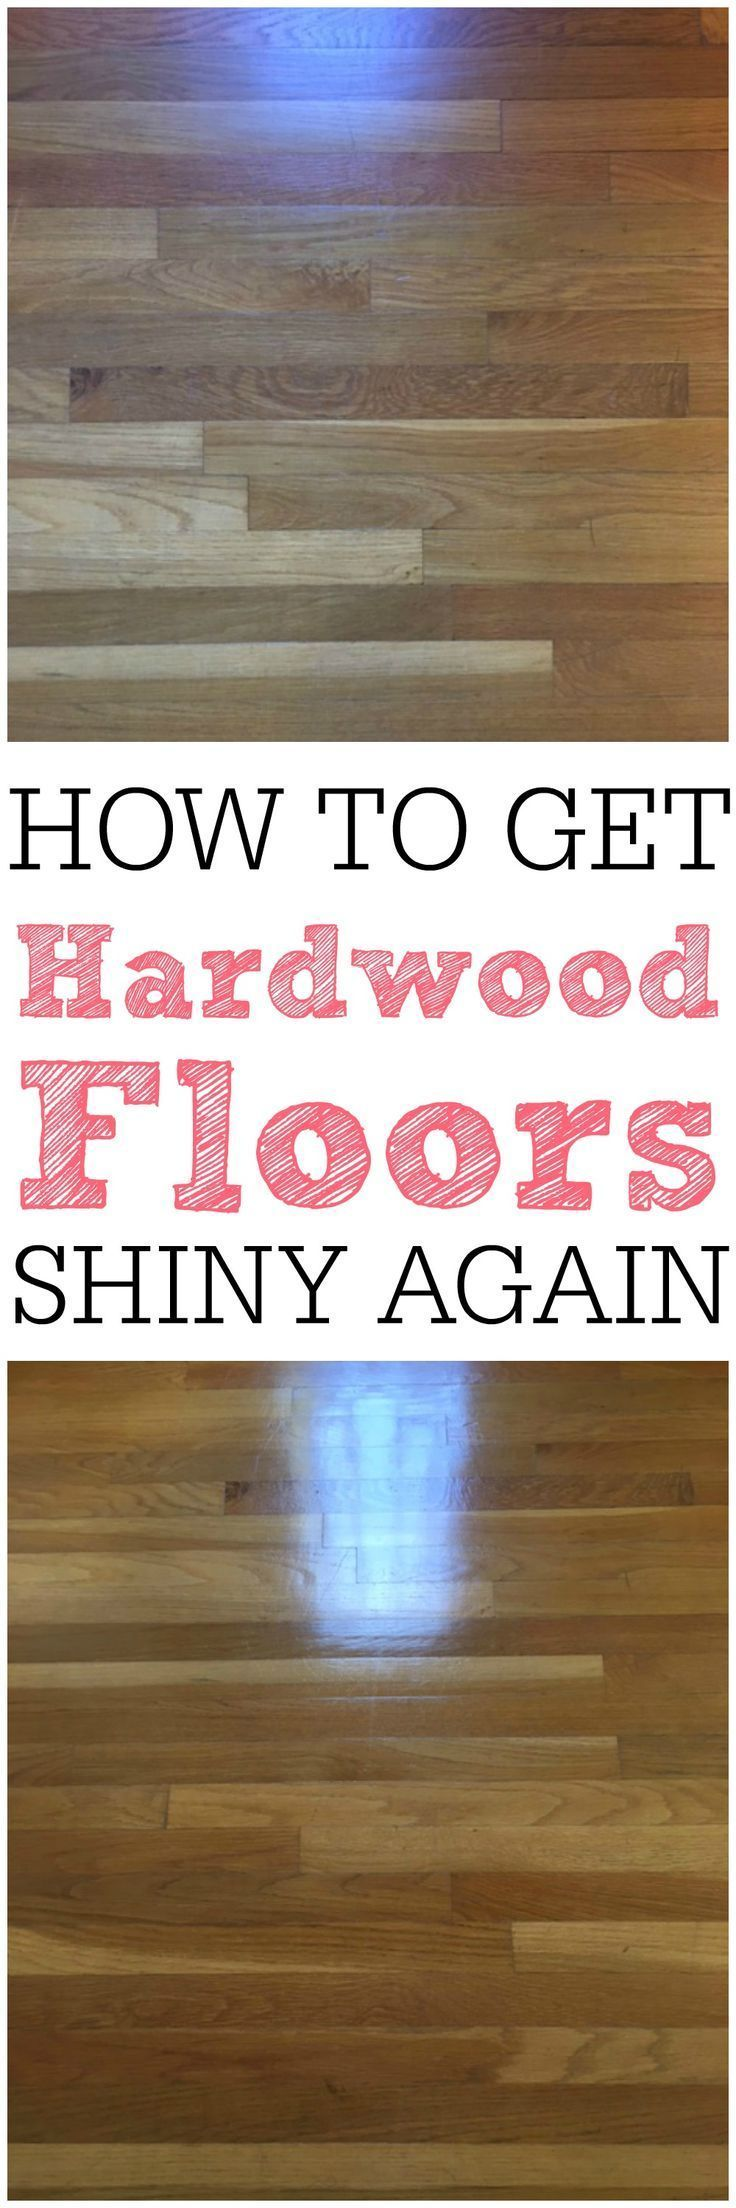 Tired of dull hardwood floors? Try these simple tricks on how to get your hardwood floors shiny again. You will love the results!